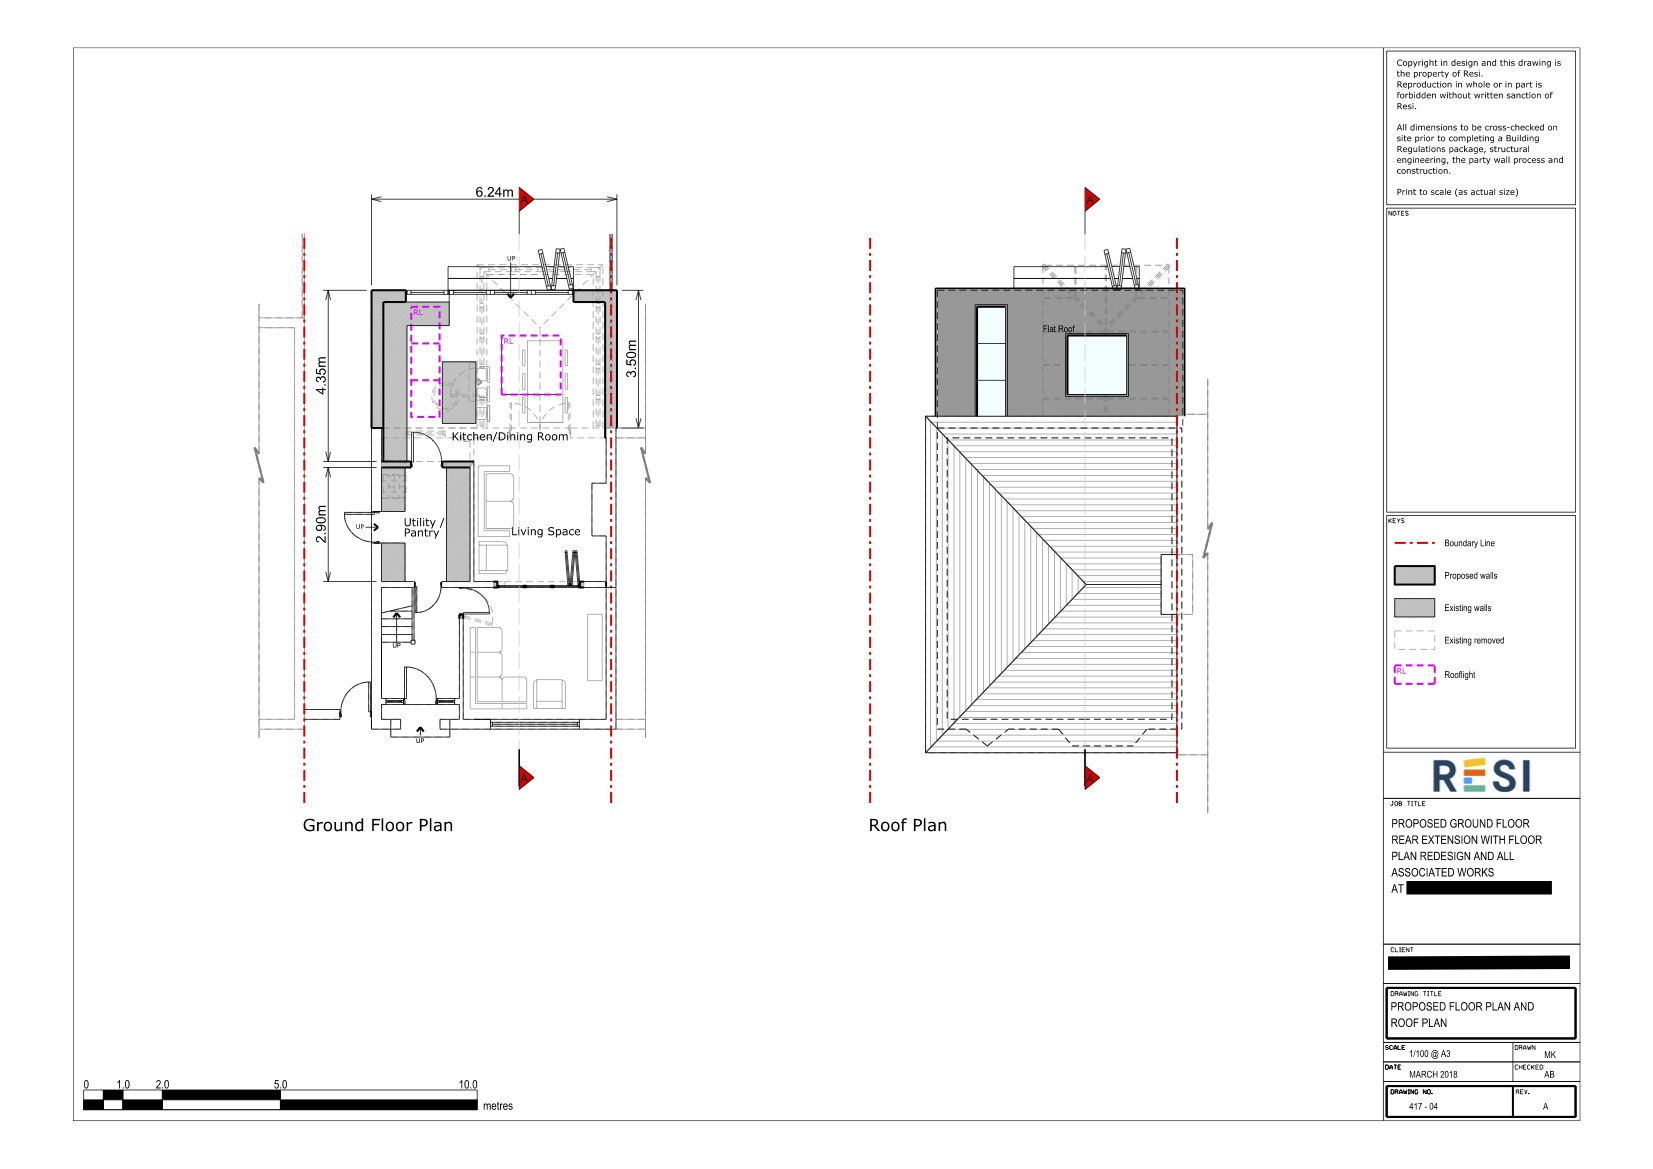 Architectural drawings set rev b   ground floor plans